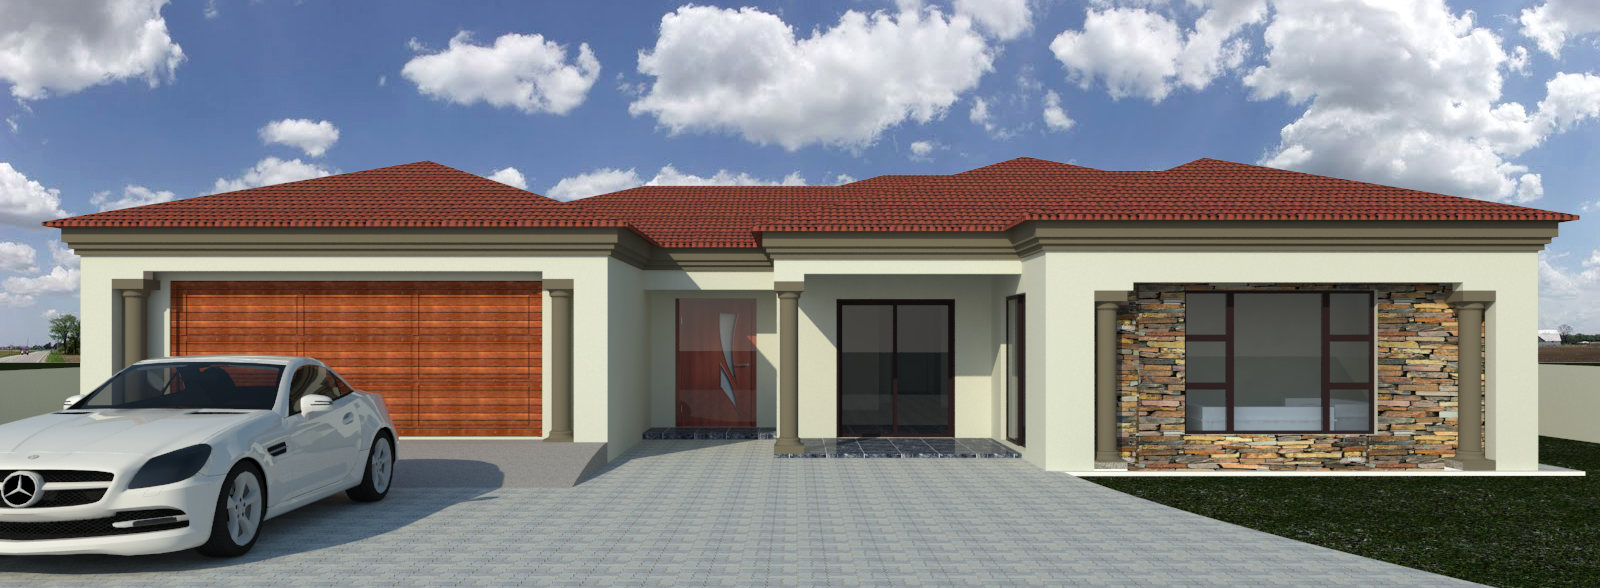 House plans south africa most affordable way build simple single level designs